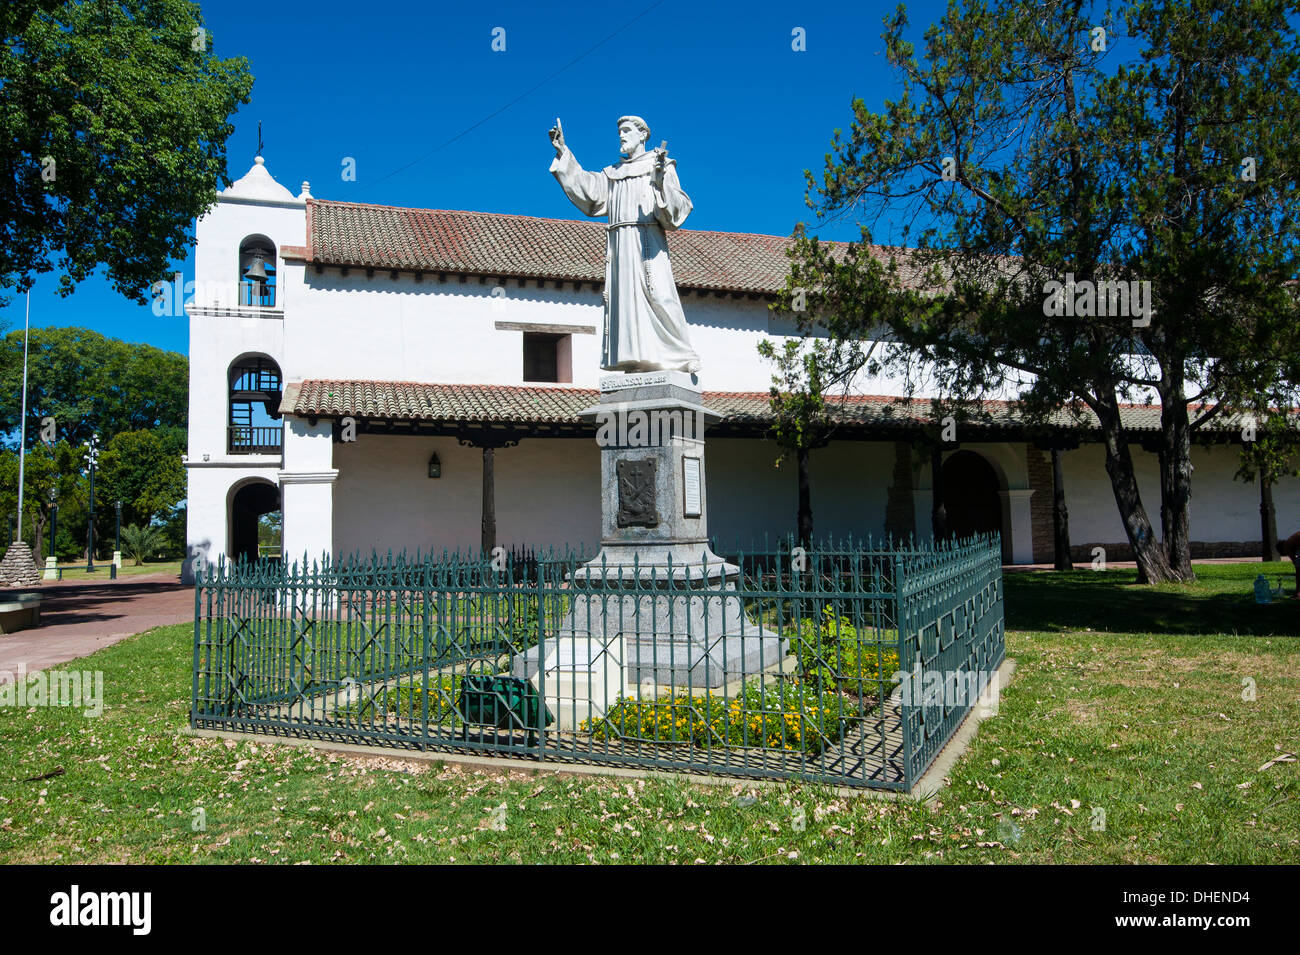 Monastery on Plaza de las Tres Cultures, Santa Fe, capital of the province of Santa Fe, Argentina - Stock Image